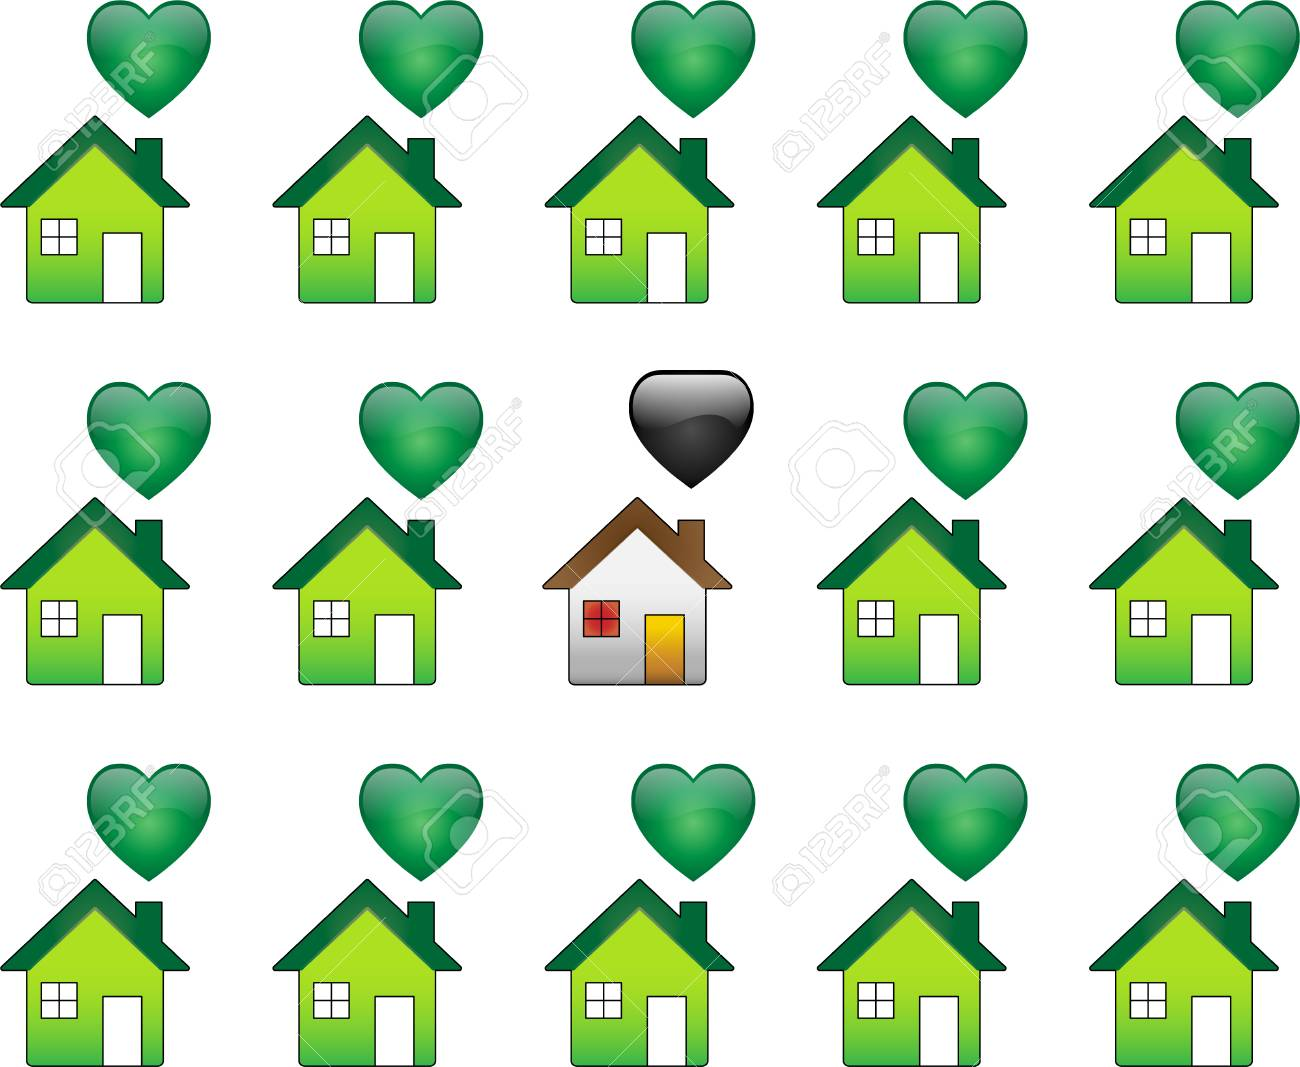 Ecological Houses and regular polutant houses Stock Vector - 4773211